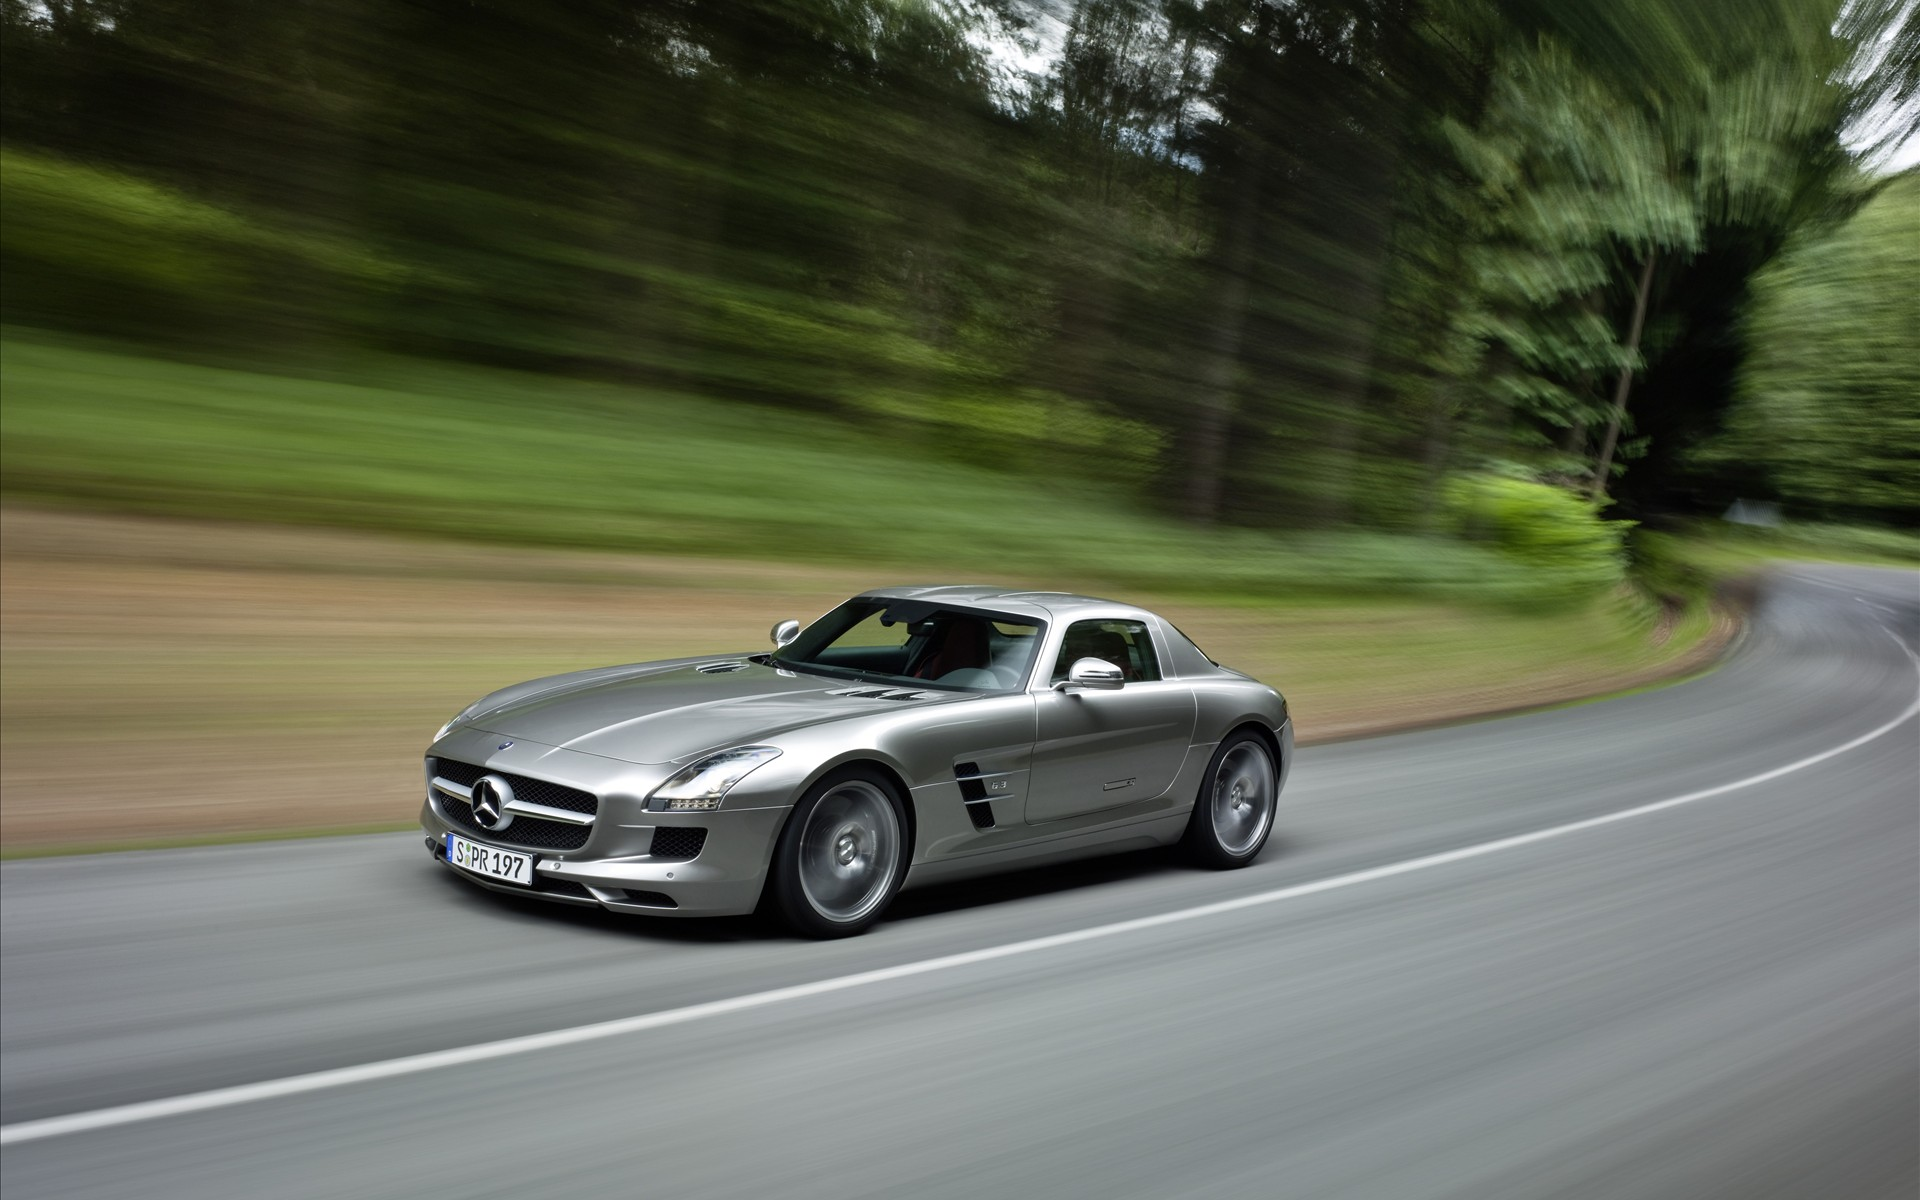 Mercedes Benz Sls Amg Wallpapers 1920x1200 330144